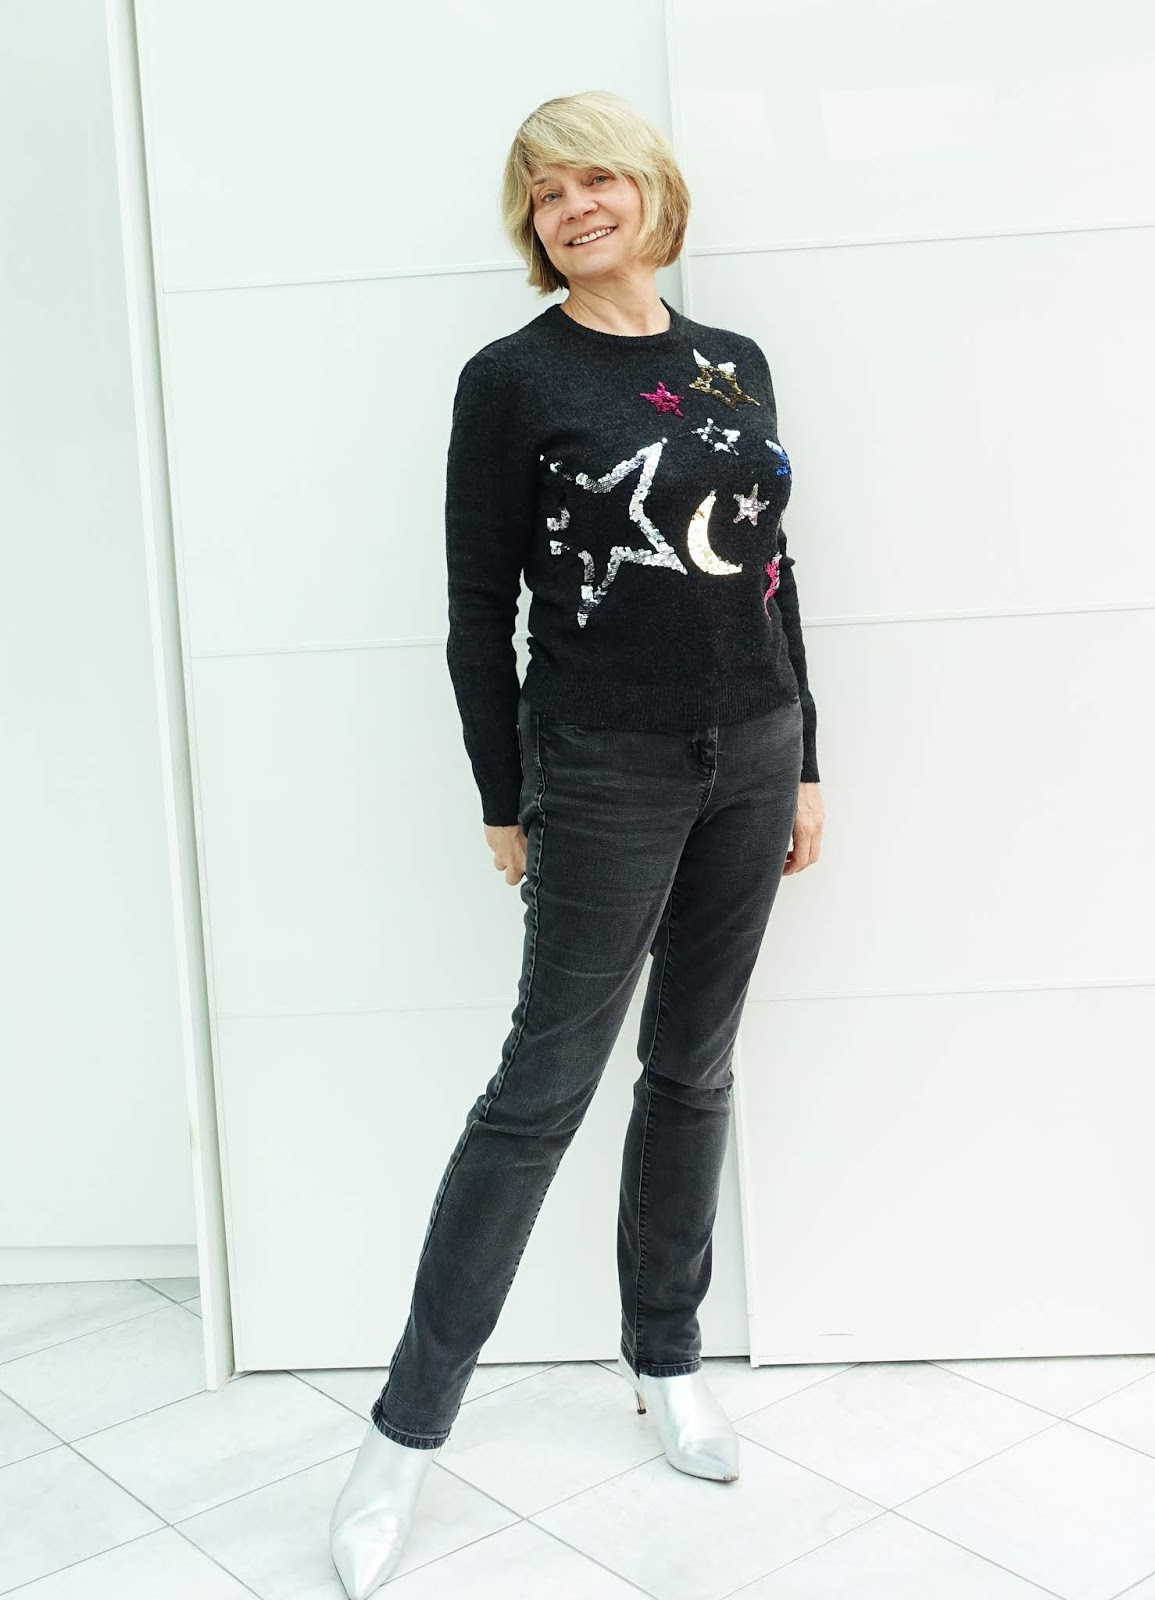 A sparkly star jumper and jeans rounding off the Christmas season for over-50s blogger Gail Hanlon from Is This Mutton?